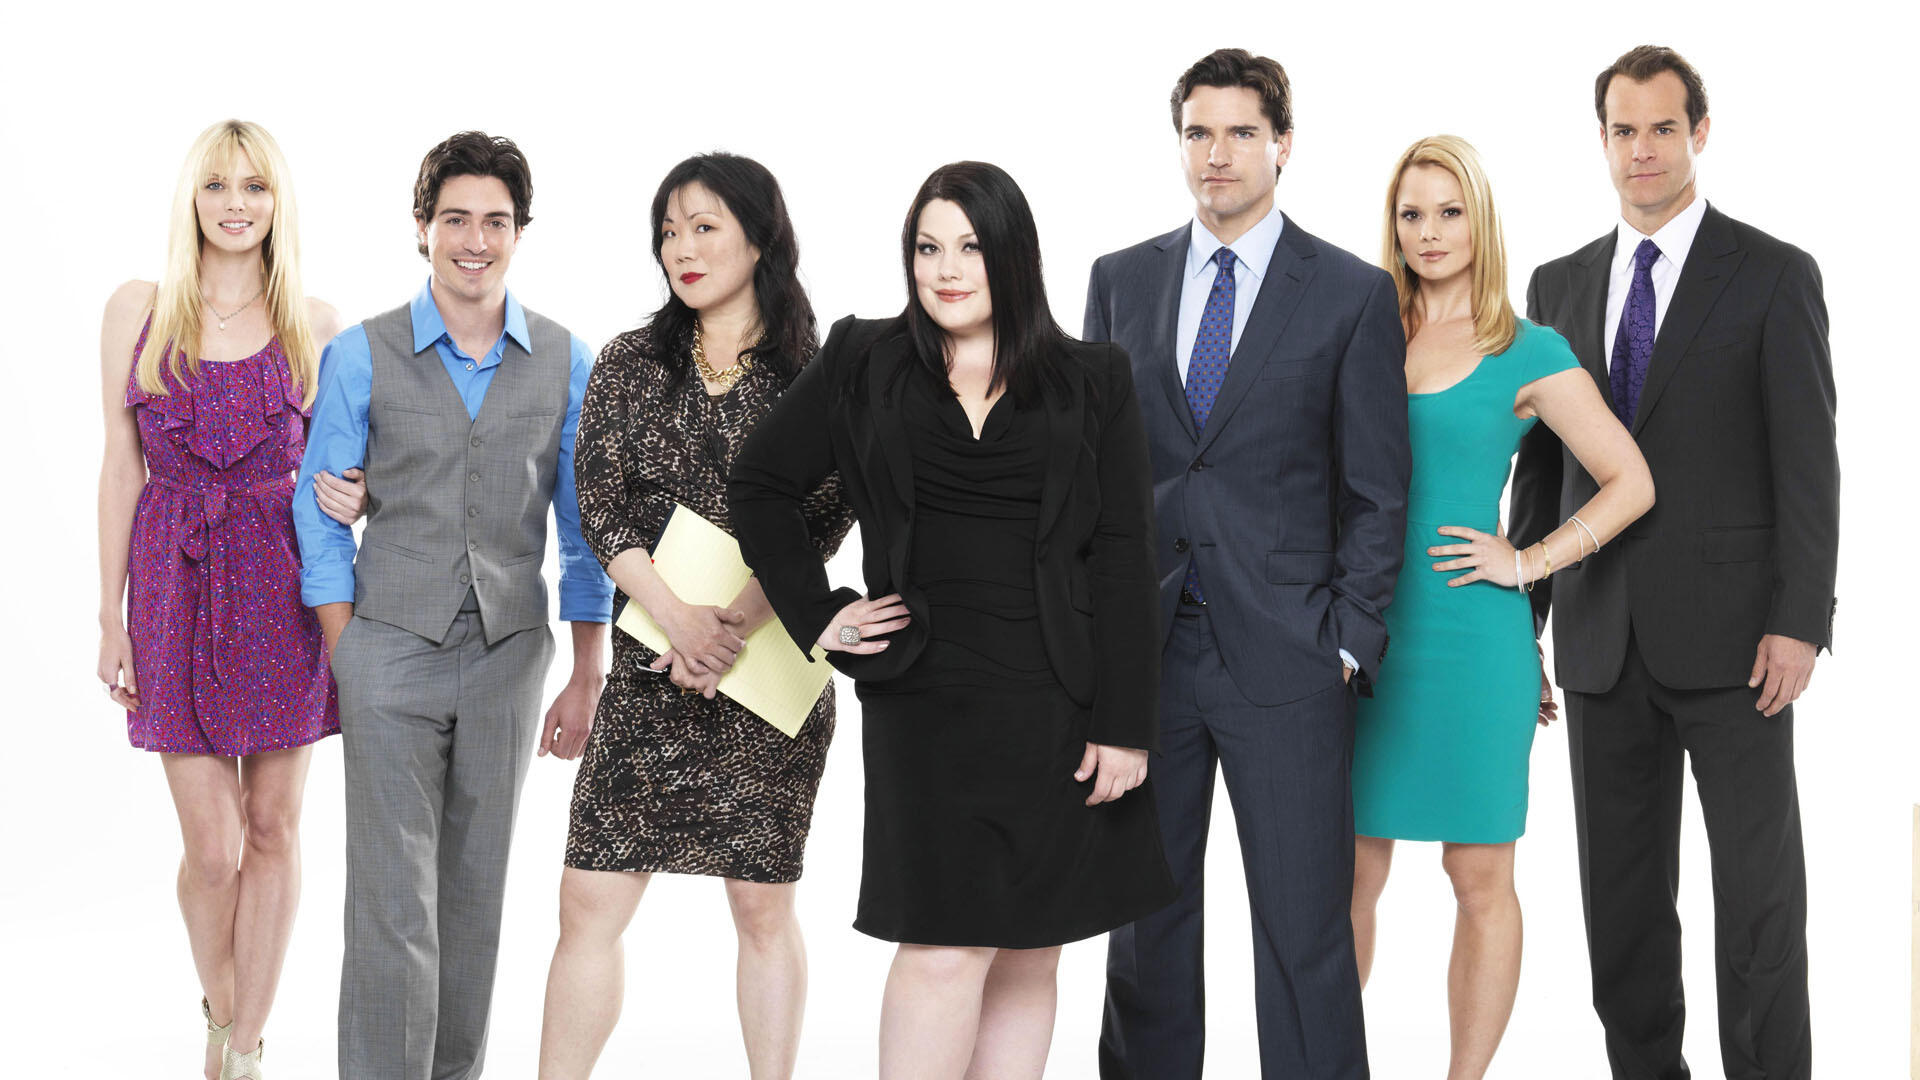 Drop dead diva bild 10 von 18 - Drop dead diva ita streaming ...